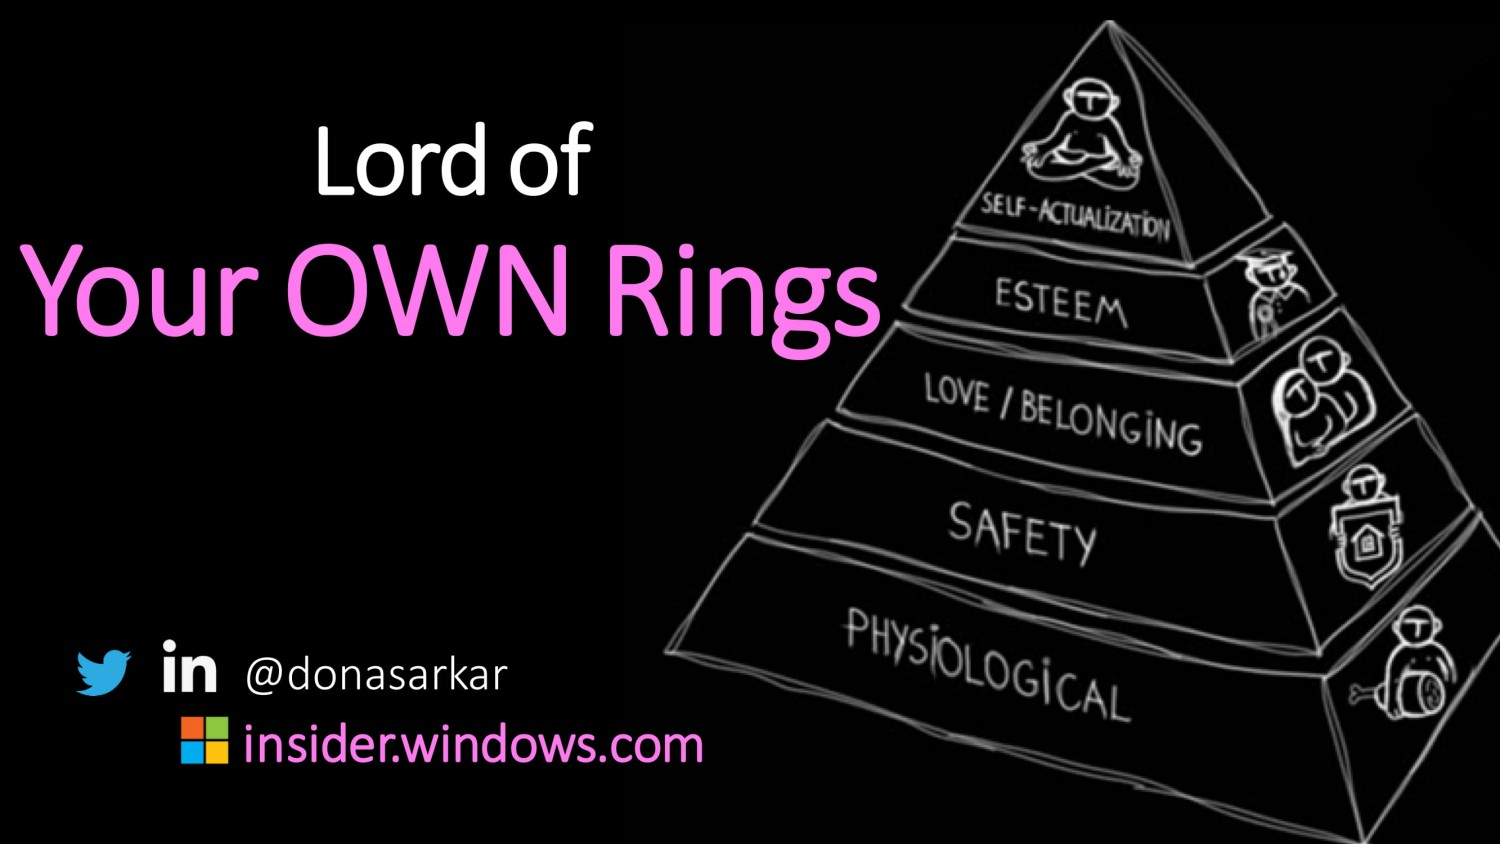 Lord of Your Own Rings-01